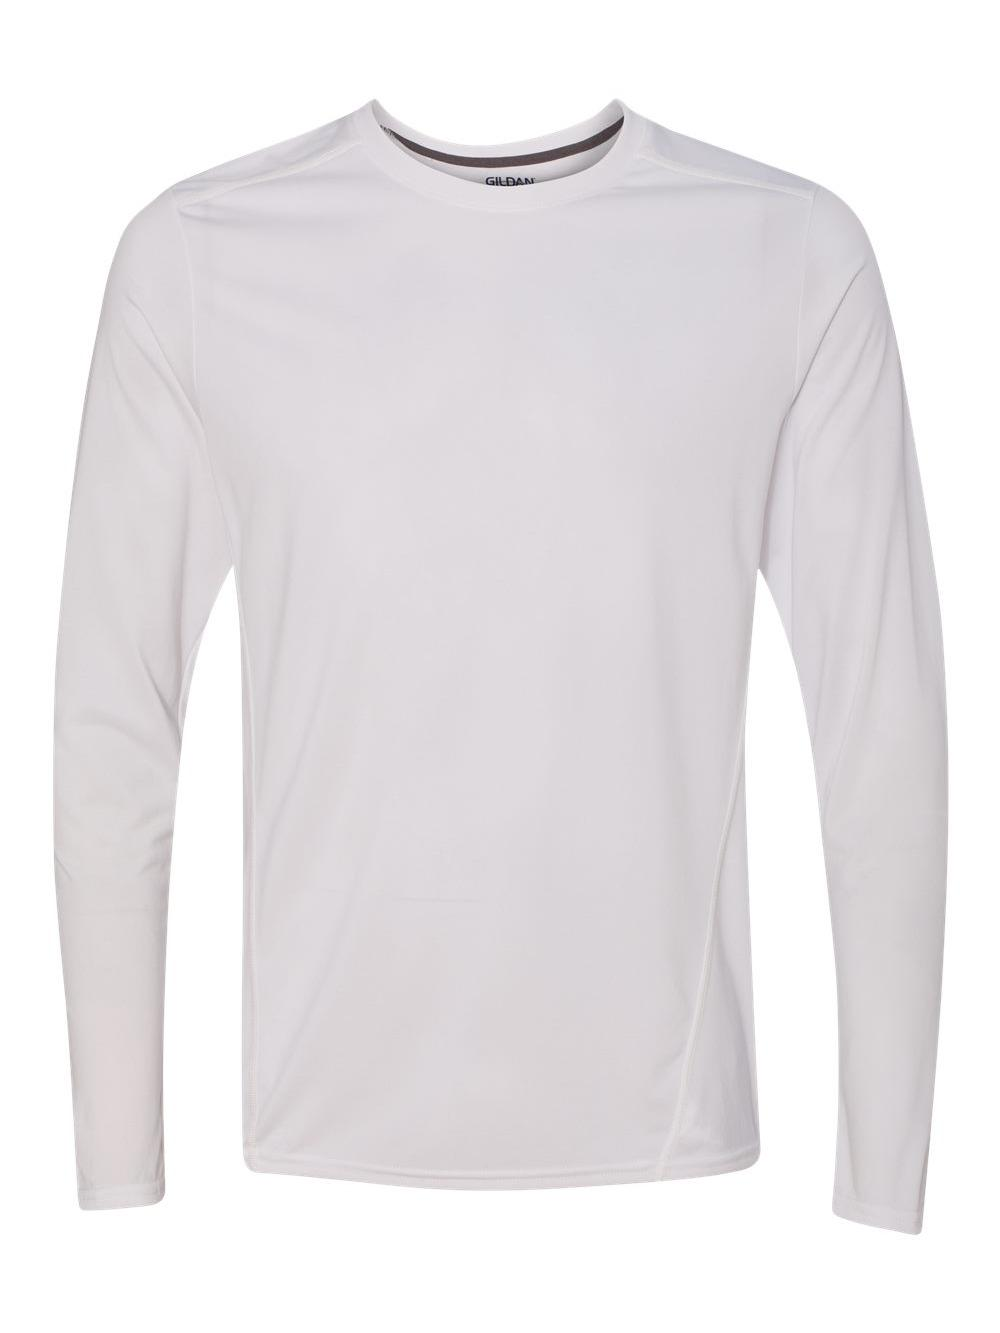 Gildan-Tech-Performance-Long-Sleeve-T-Shirt-47400 thumbnail 24